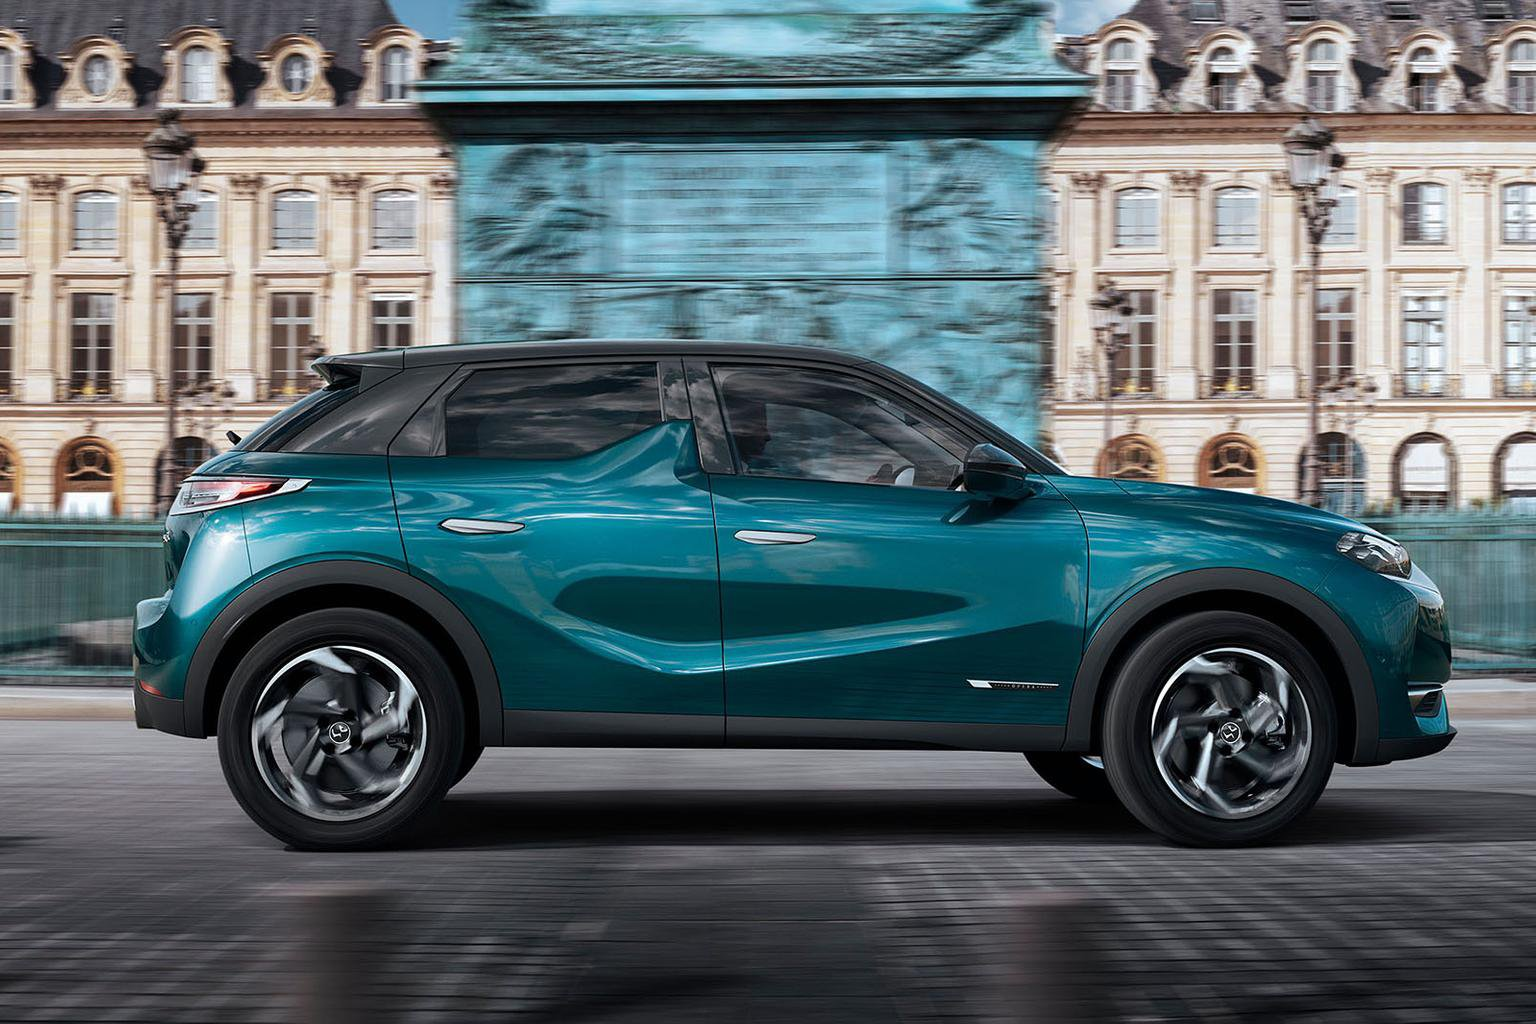 2019 DS 3 Crossback revealed – price, specs and release date